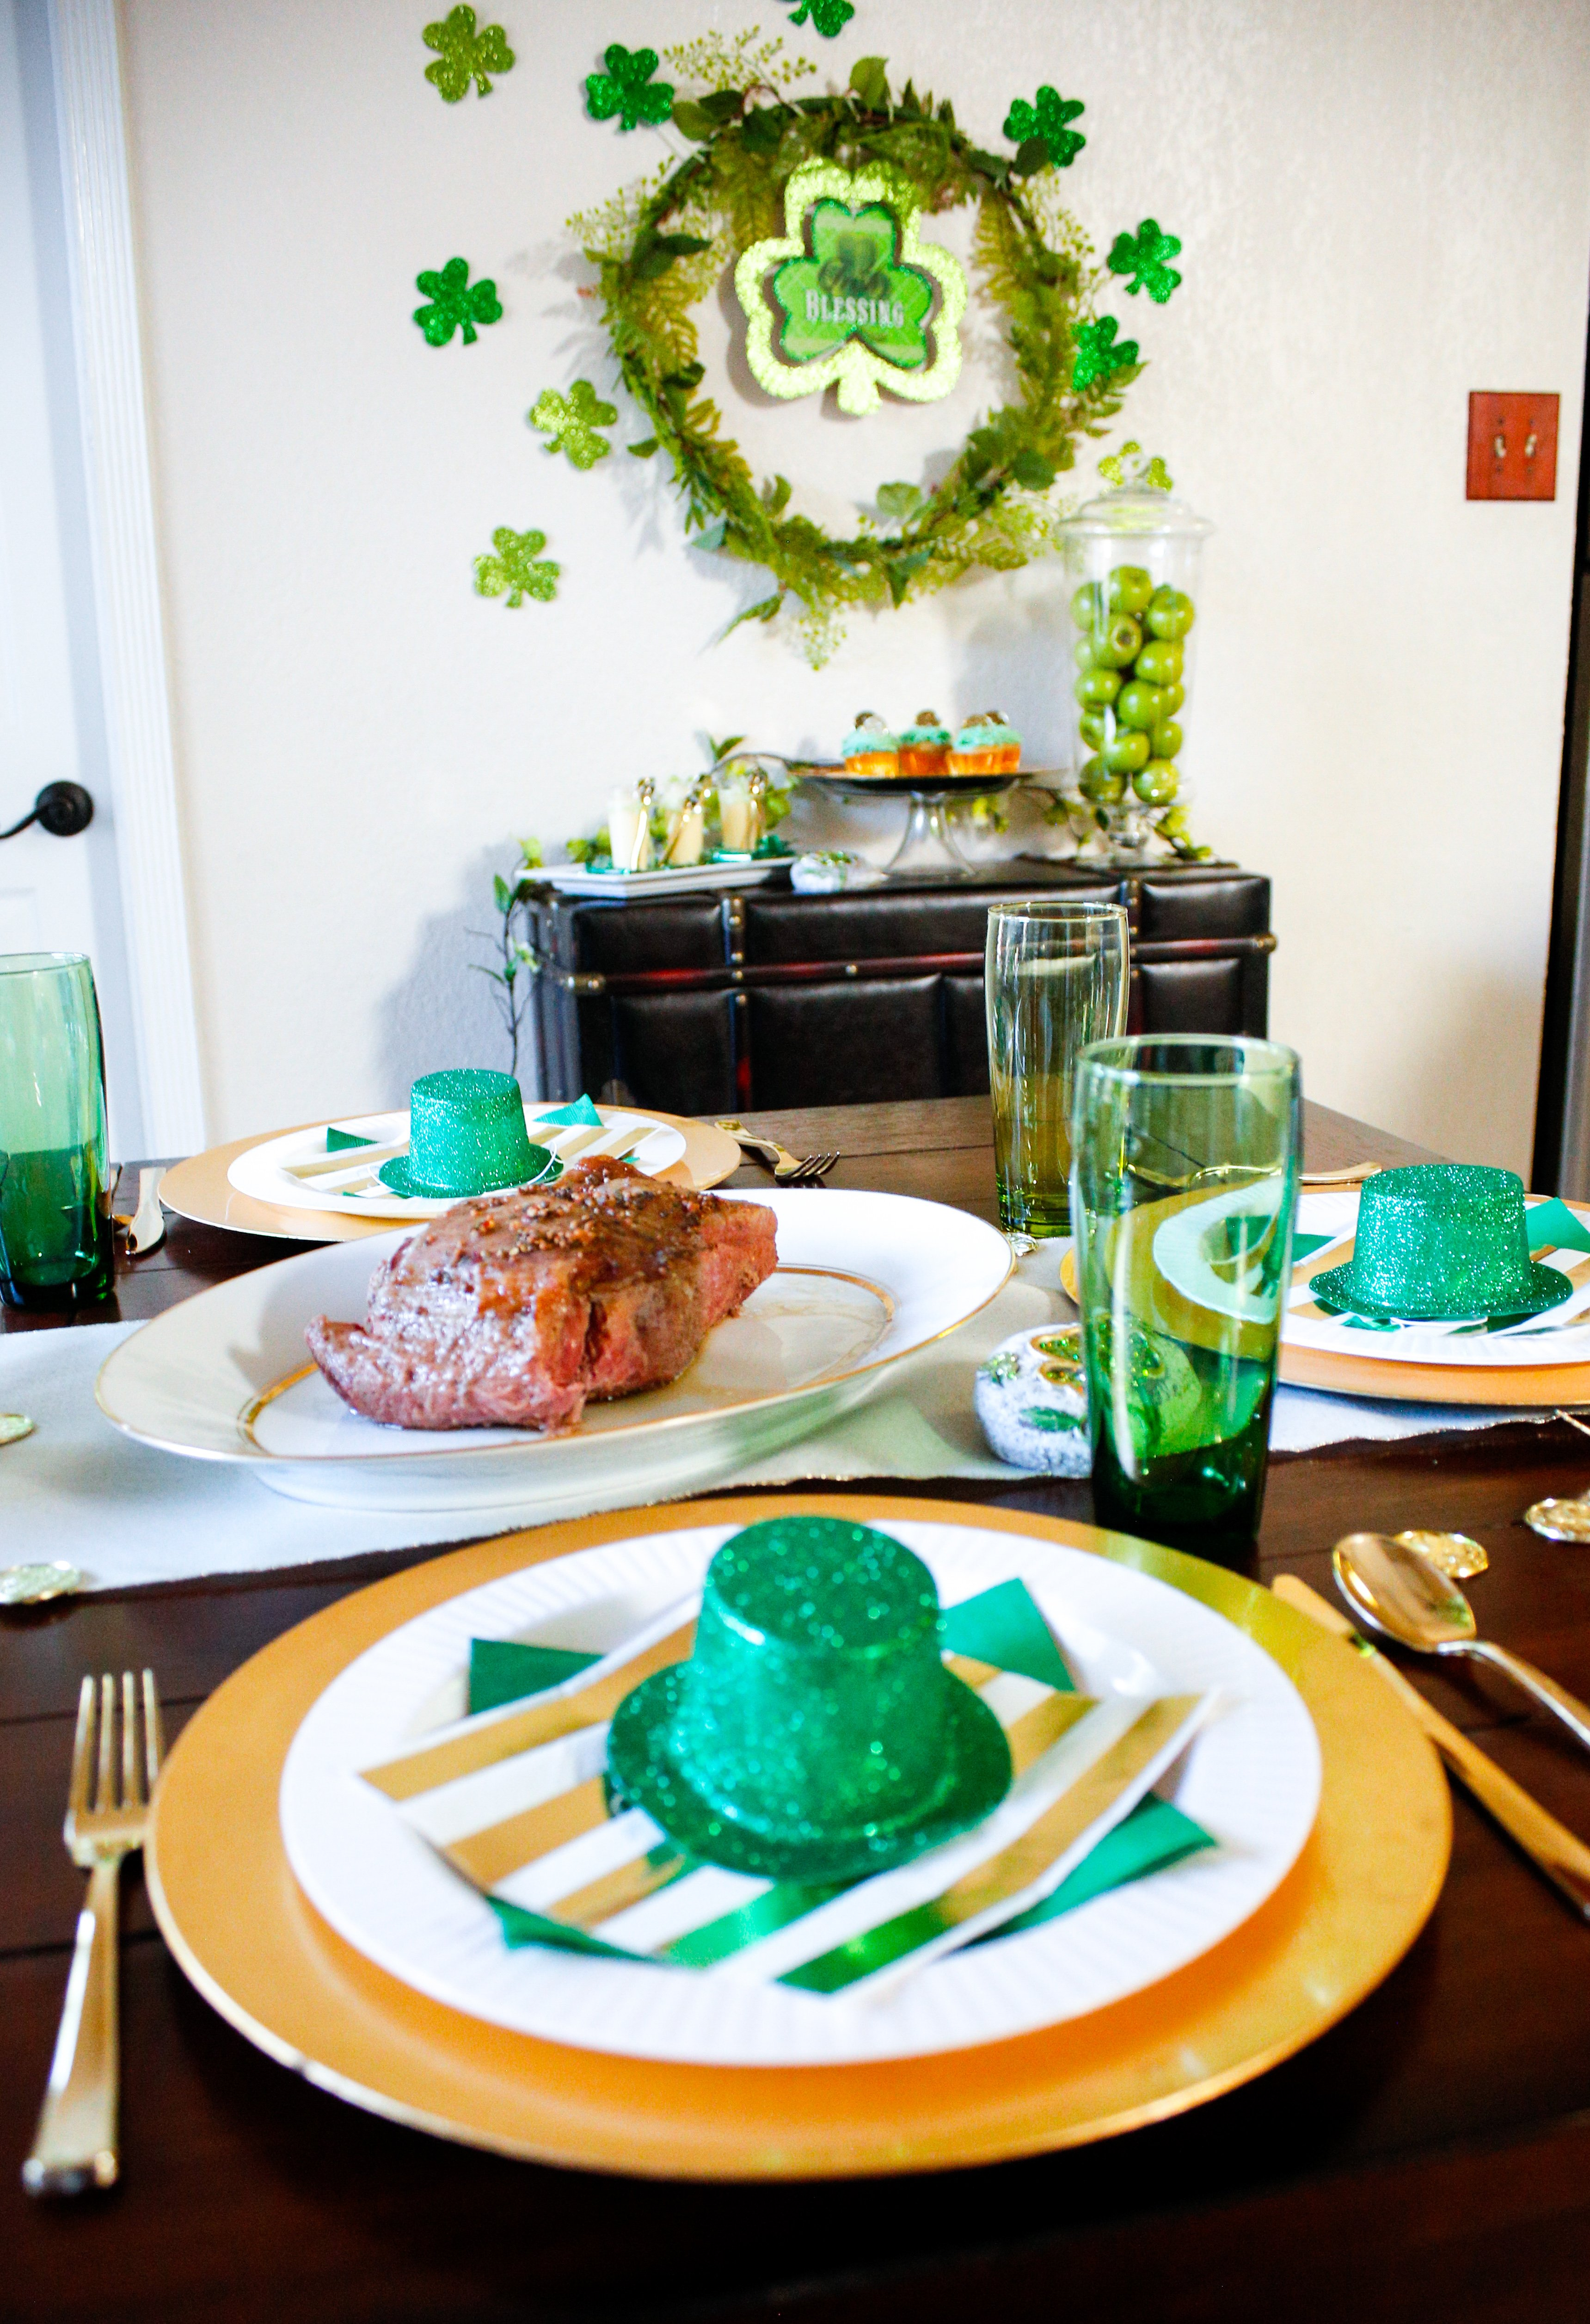 Decorating and menu ideas for a super fun St. Patrick's day dinner party